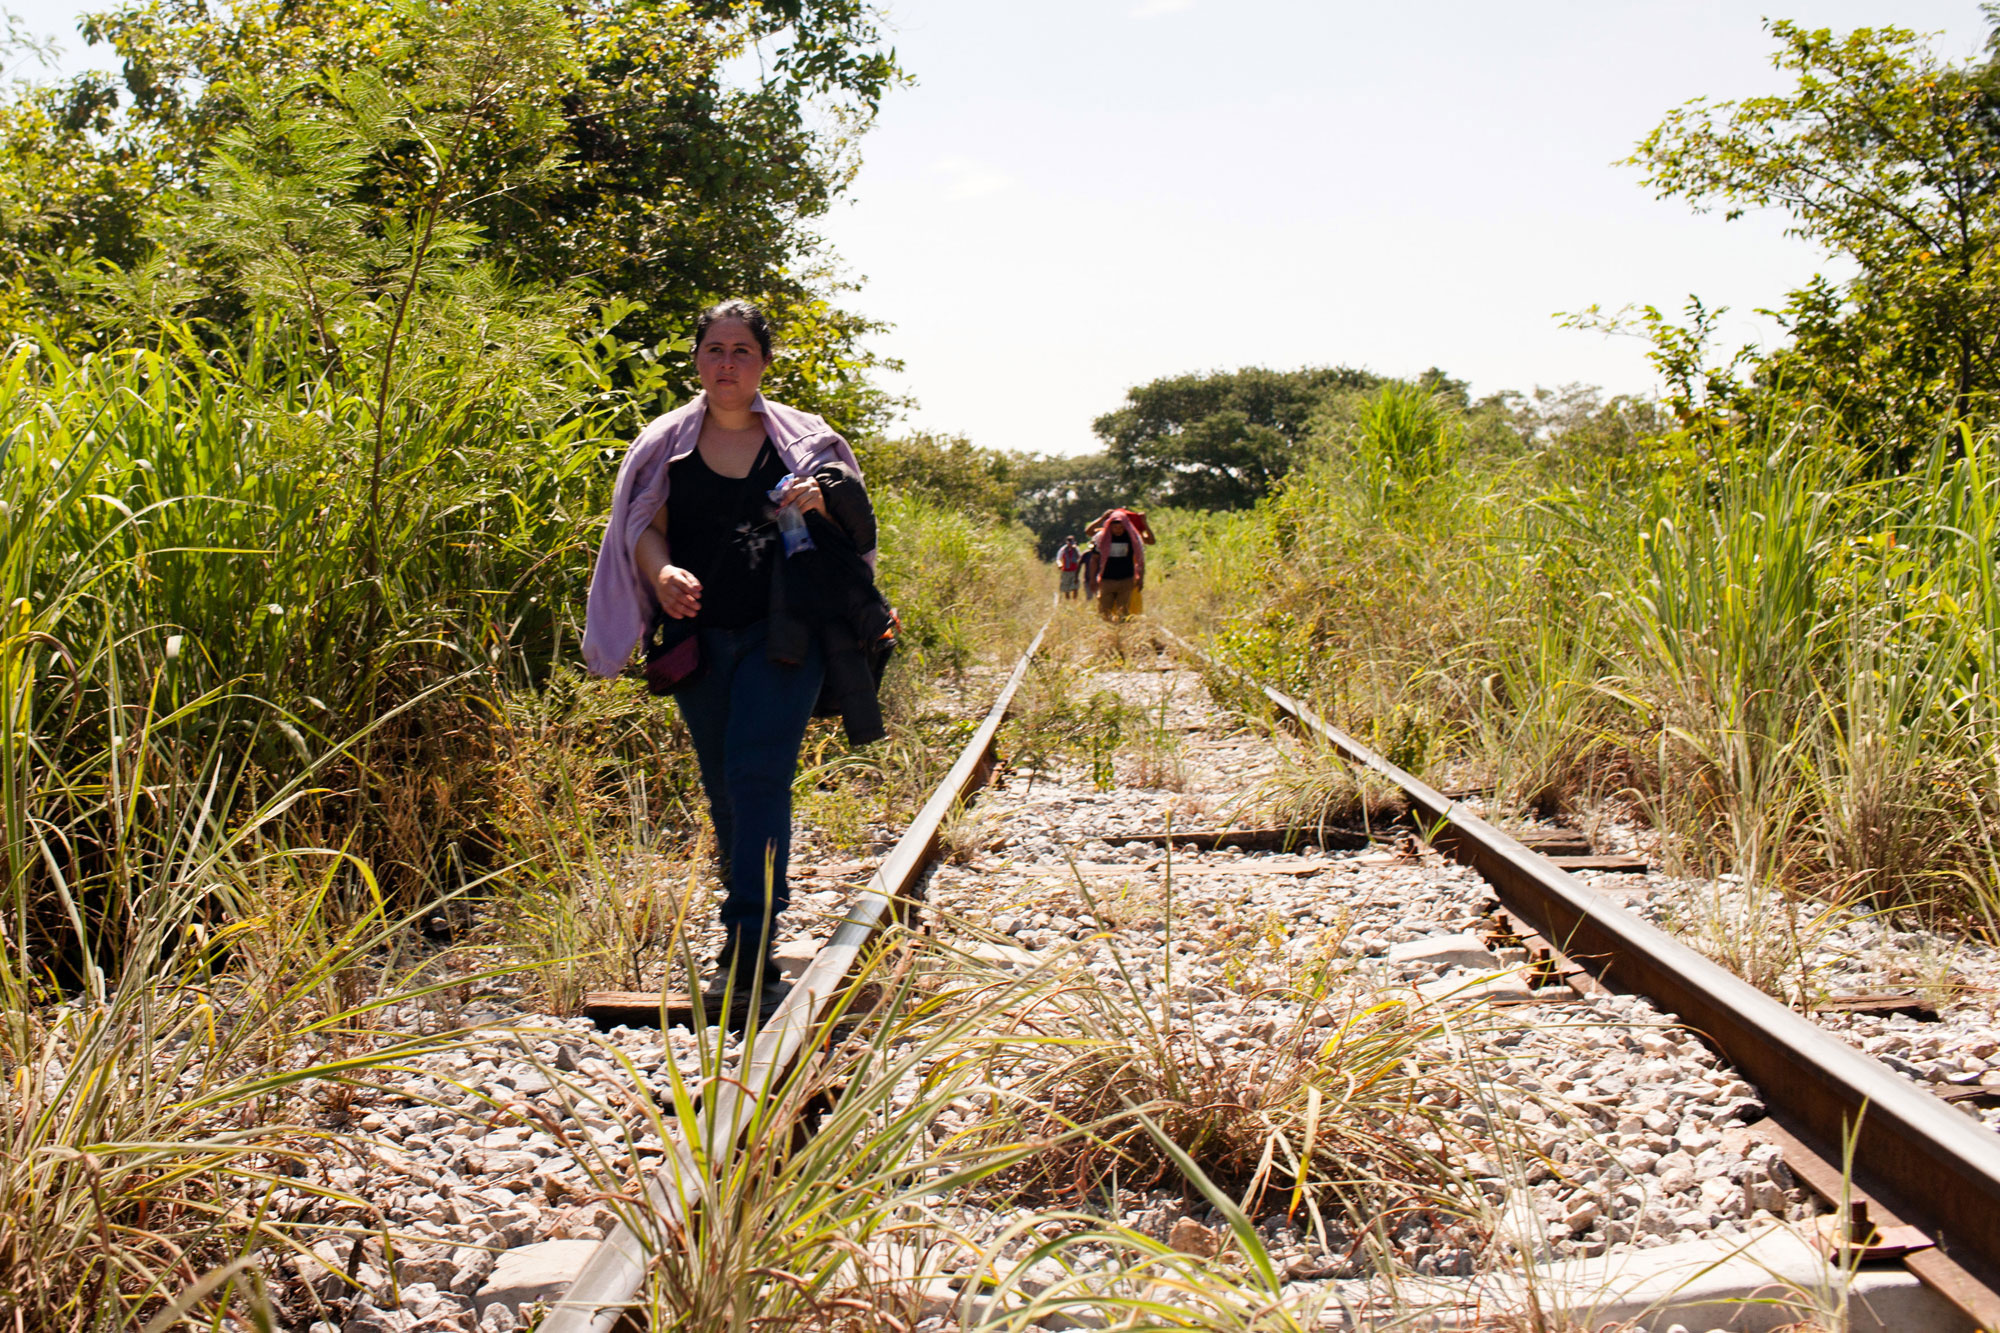 In Chiapas, Mexico, a woman from El Salvador walks along the train tracks hoping to reach the United States. UNHCR/Markel Redondo